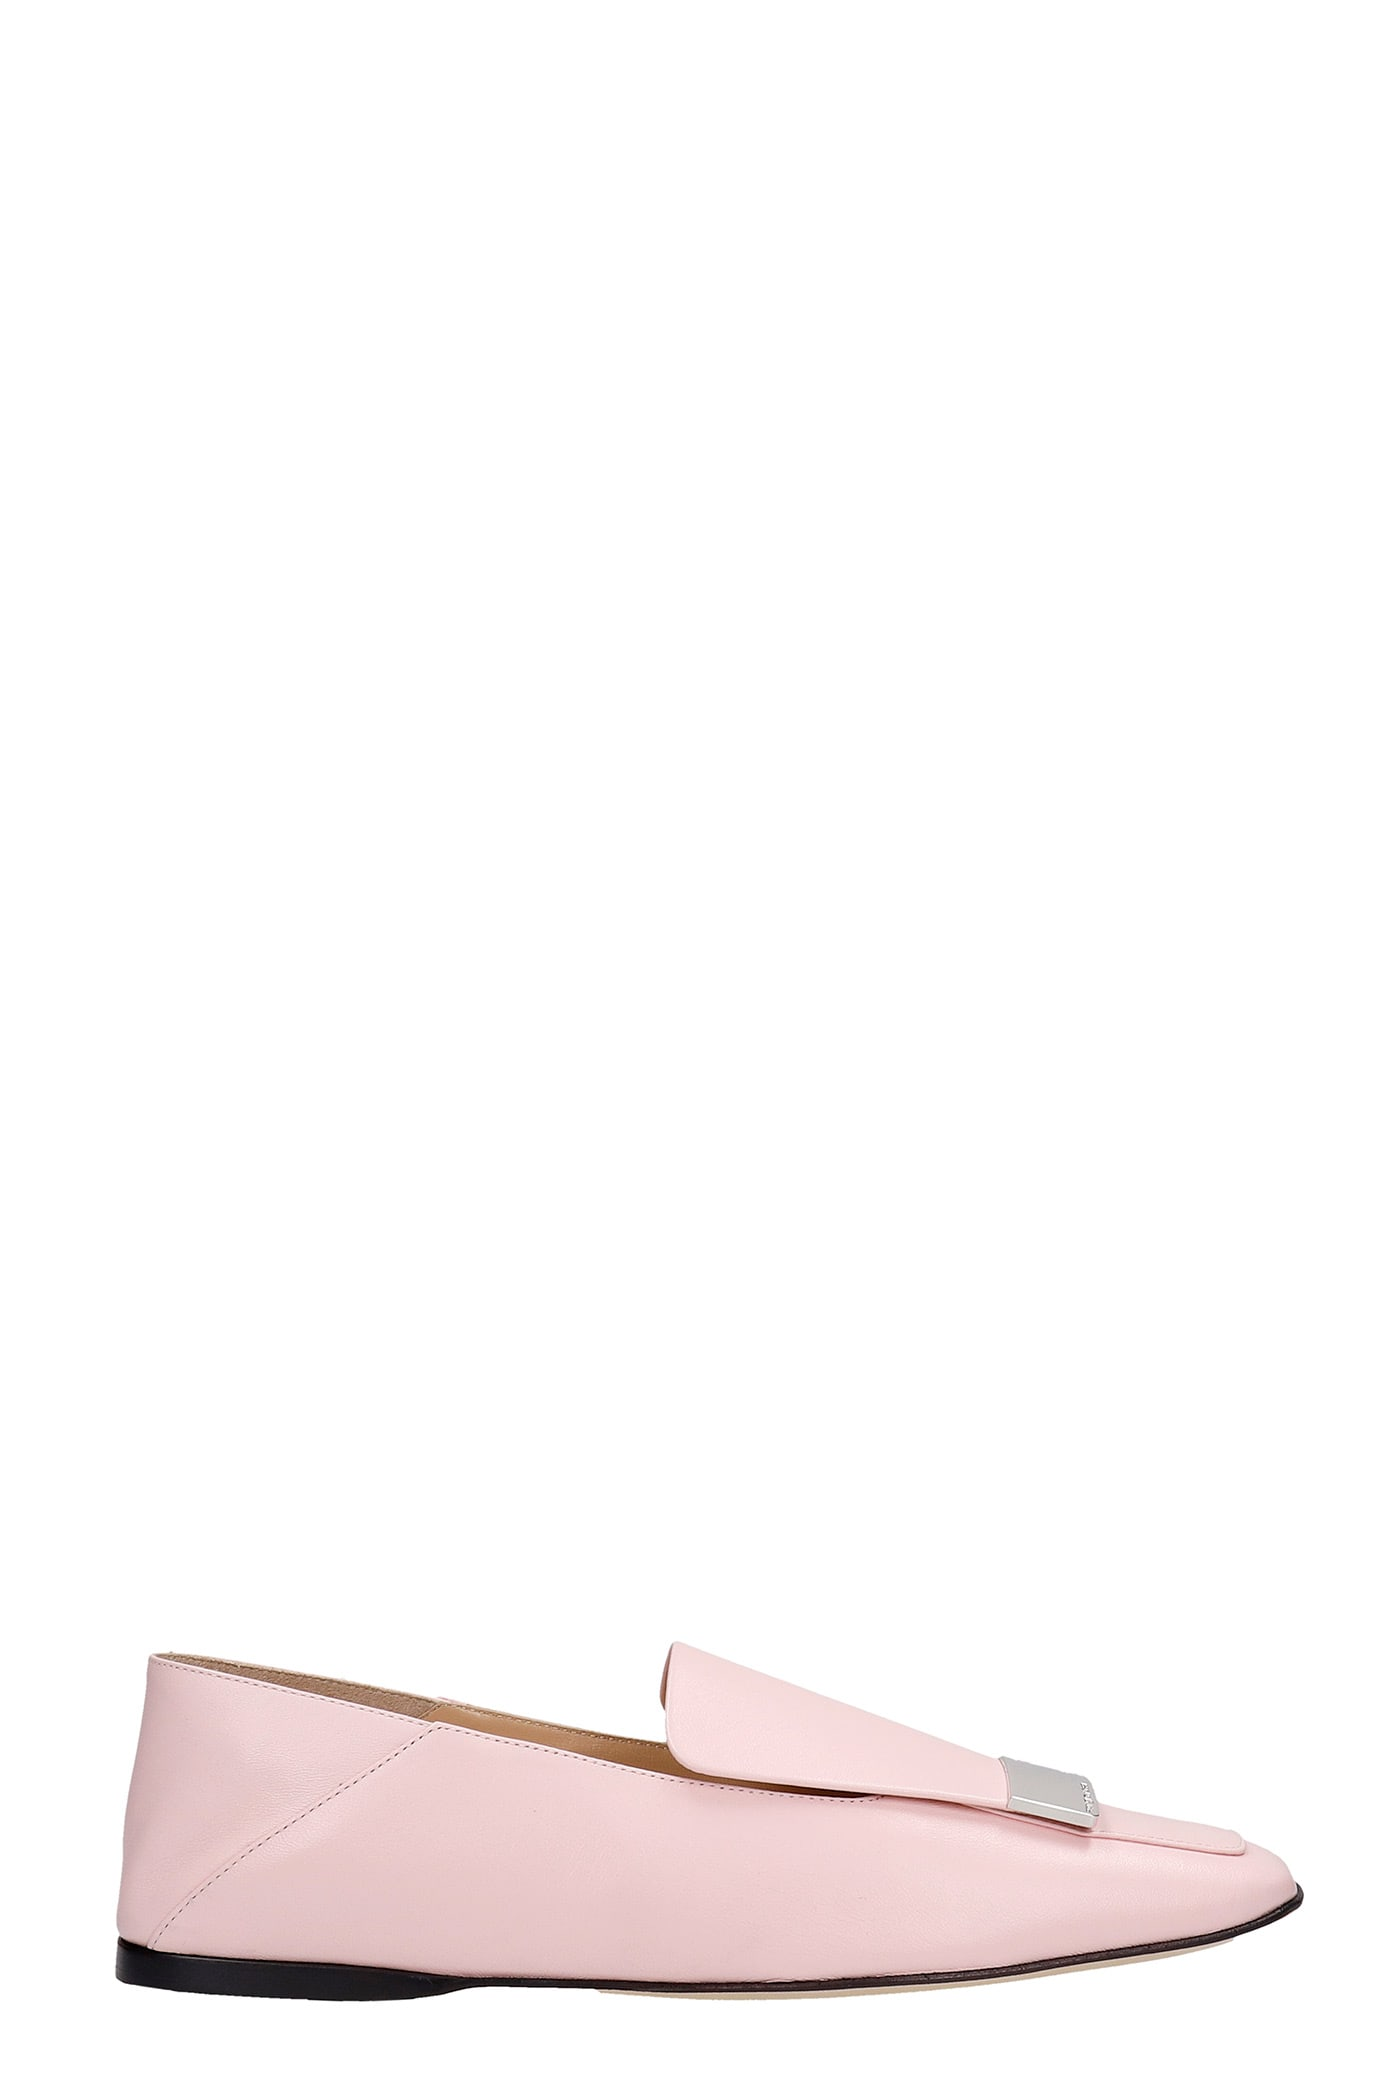 Buy Sergio Rossi Loafers In Rose-pink Leather online, shop Sergio Rossi shoes with free shipping